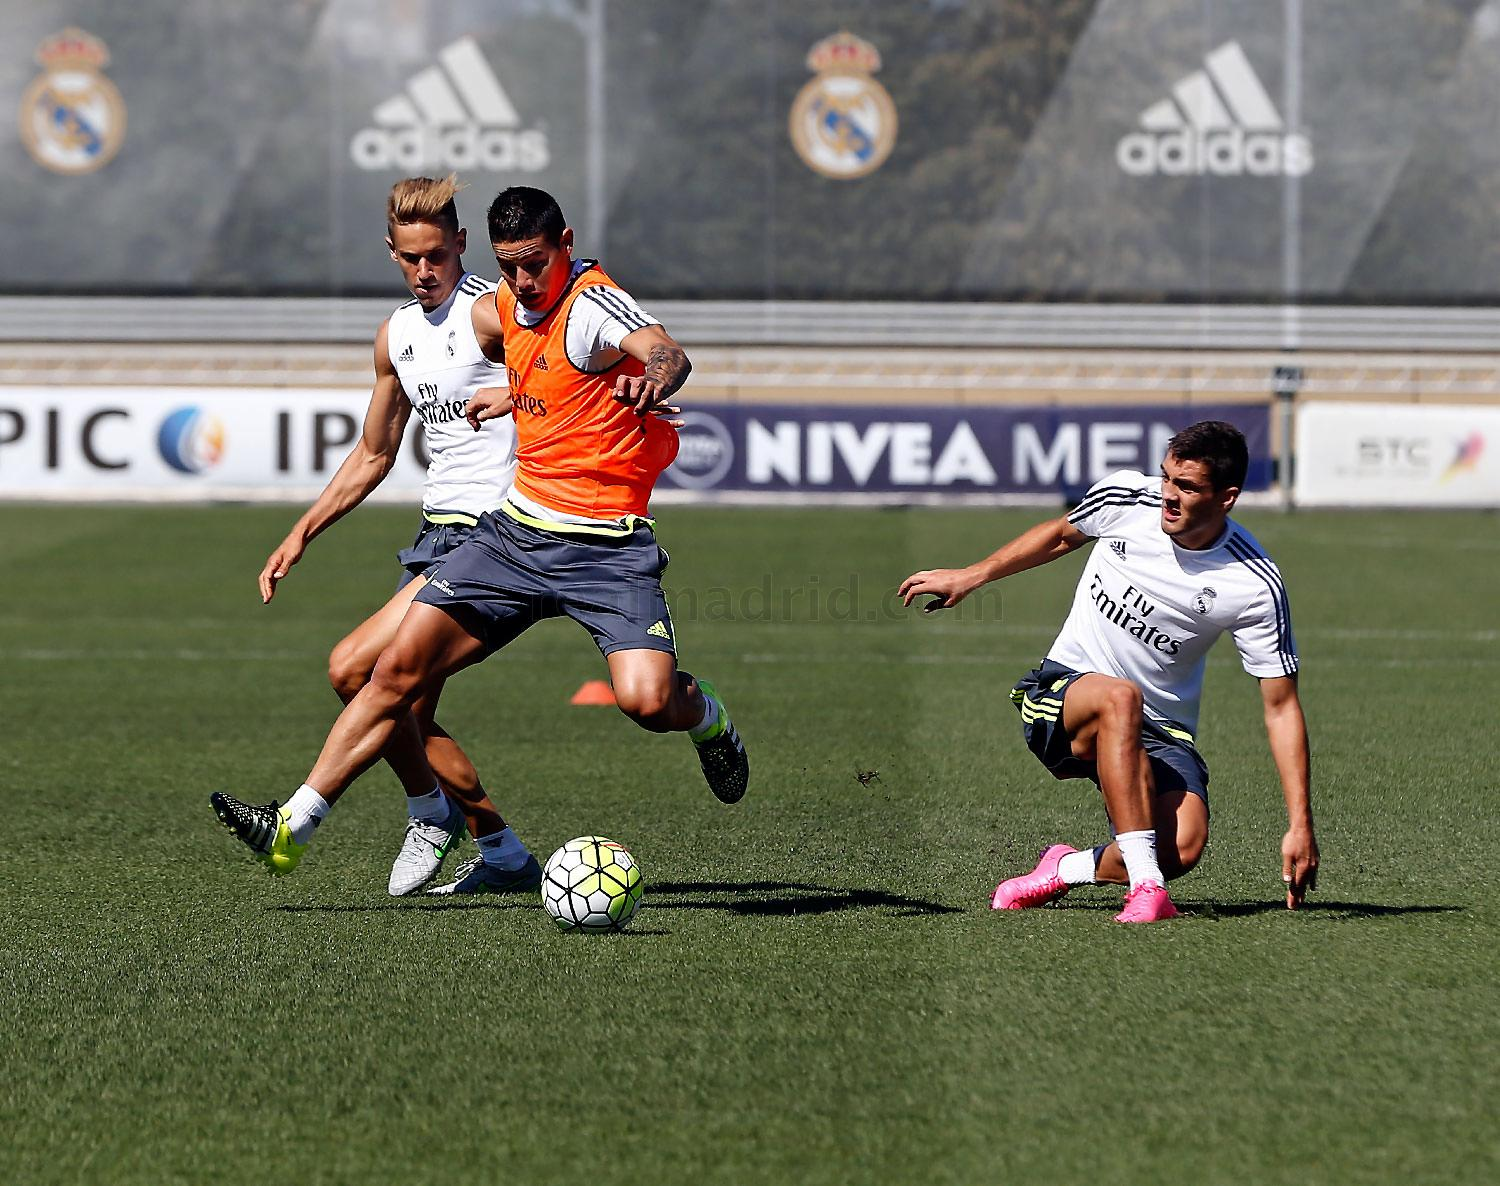 Real Madrid - Entrenamiento del Real Madrid - 24-08-2015